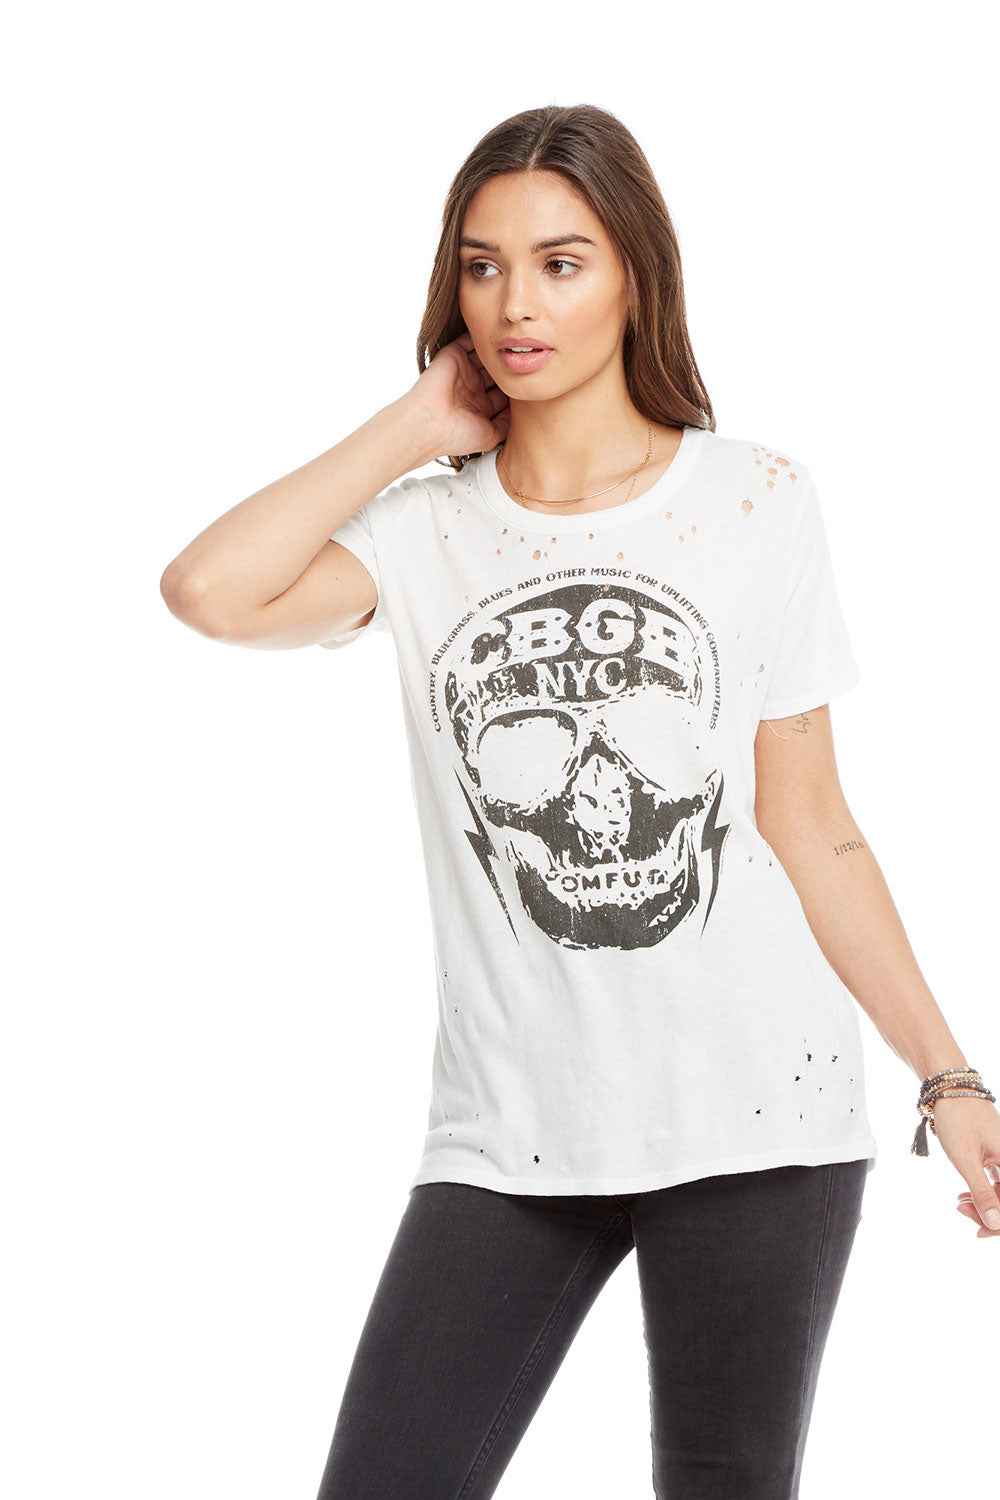 CBGB - CBGB Skull, WOMENS, chaserbrand.com,chaser clothing,chaser apparel,chaser los angeles